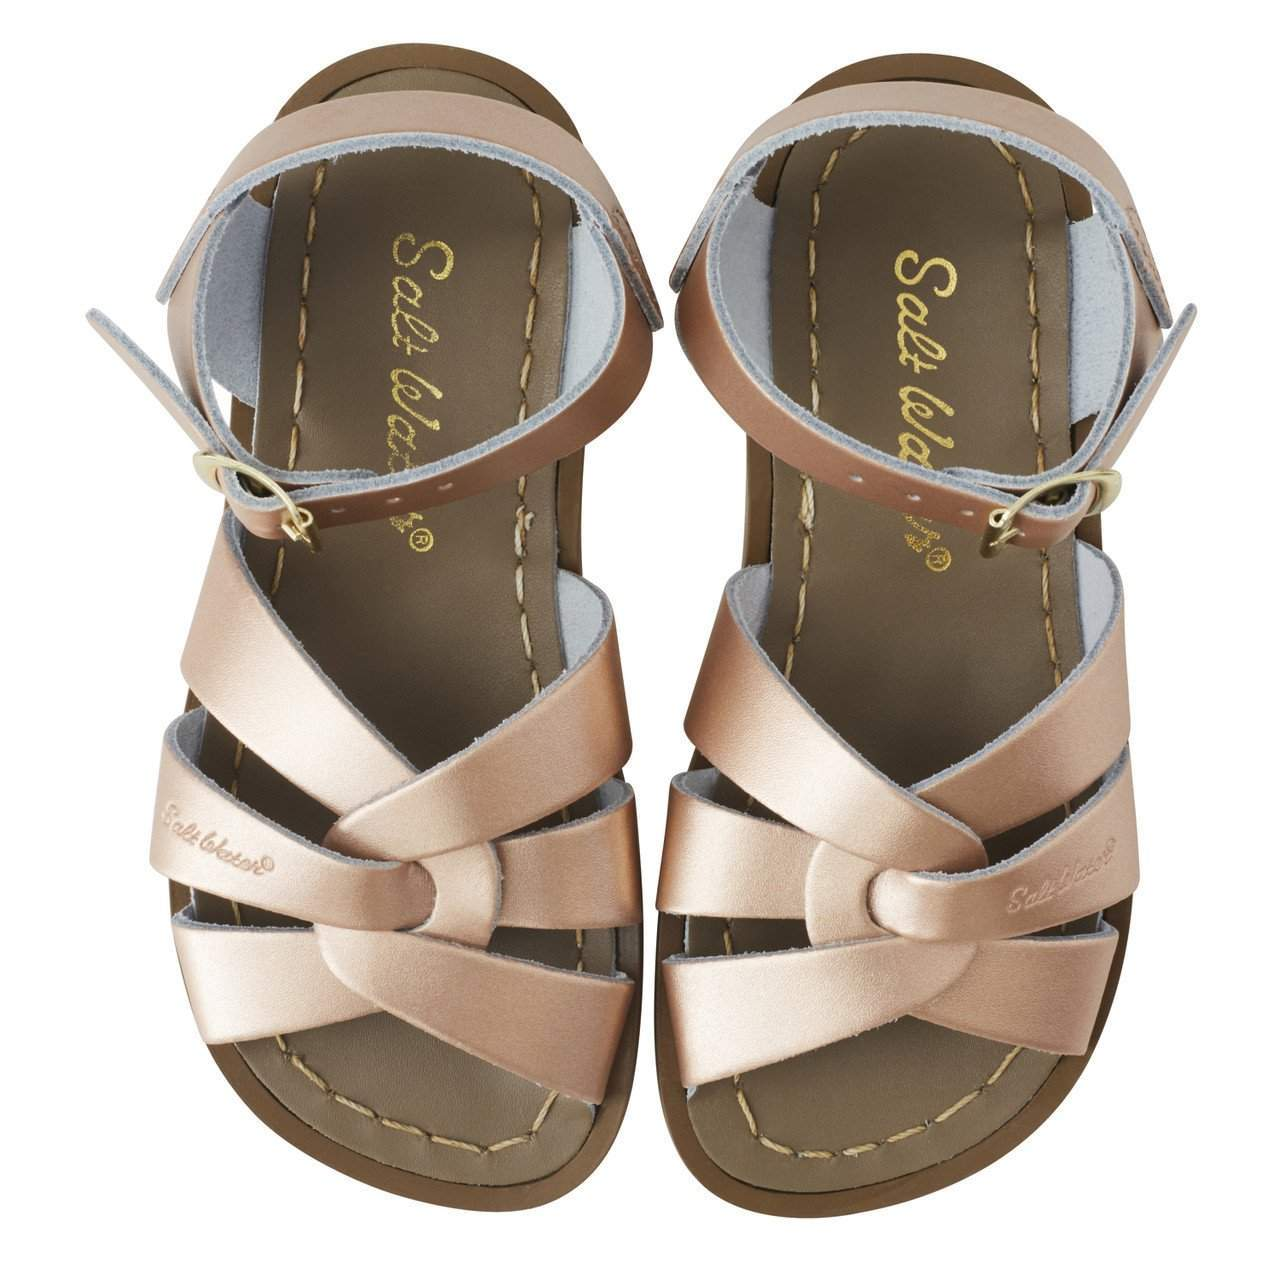 Saltwater Sandals Original Kids